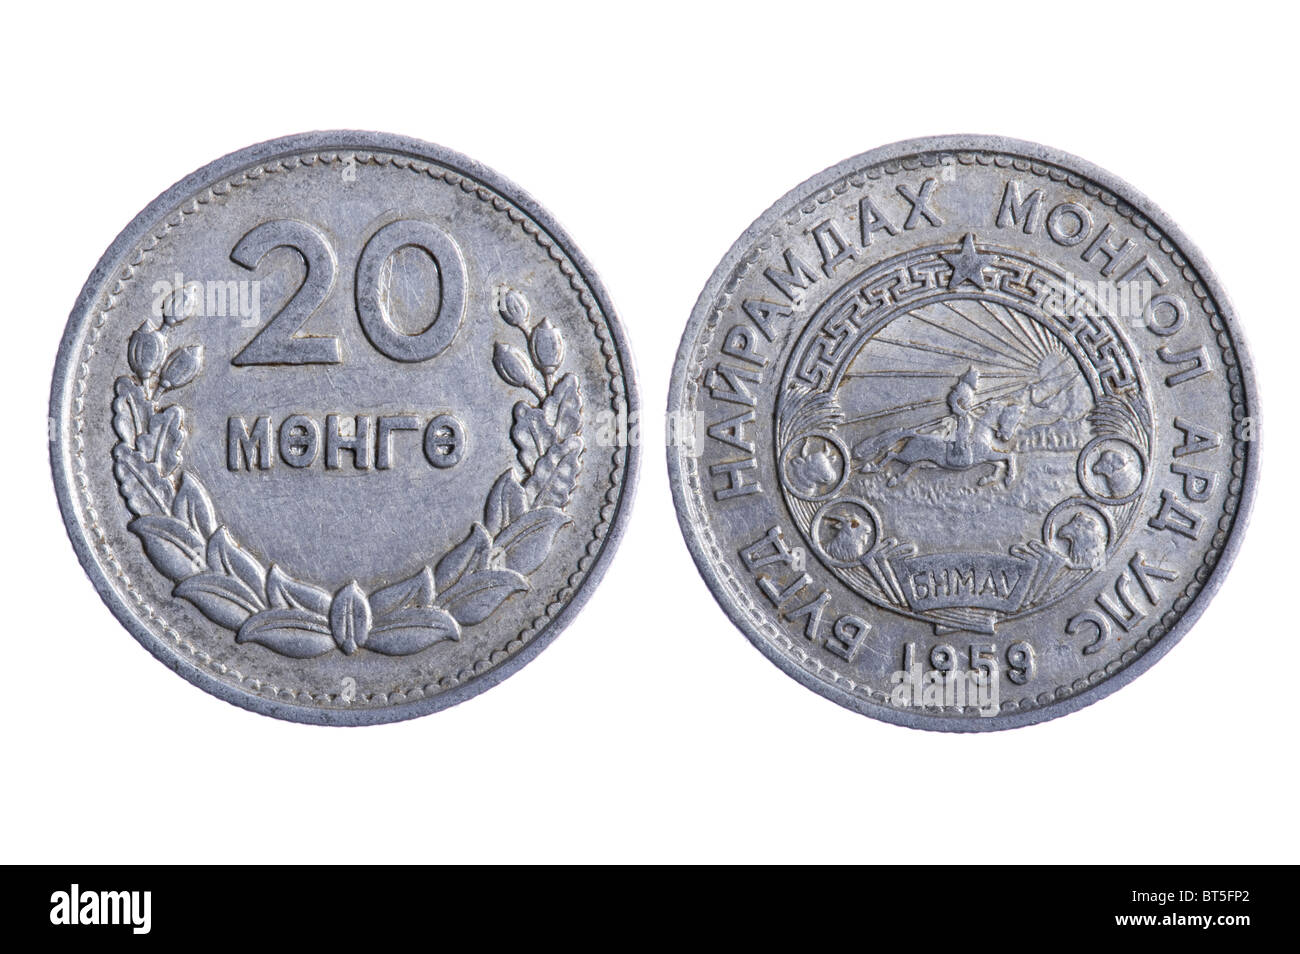 object on white - Mongolia coins close up - Stock Image